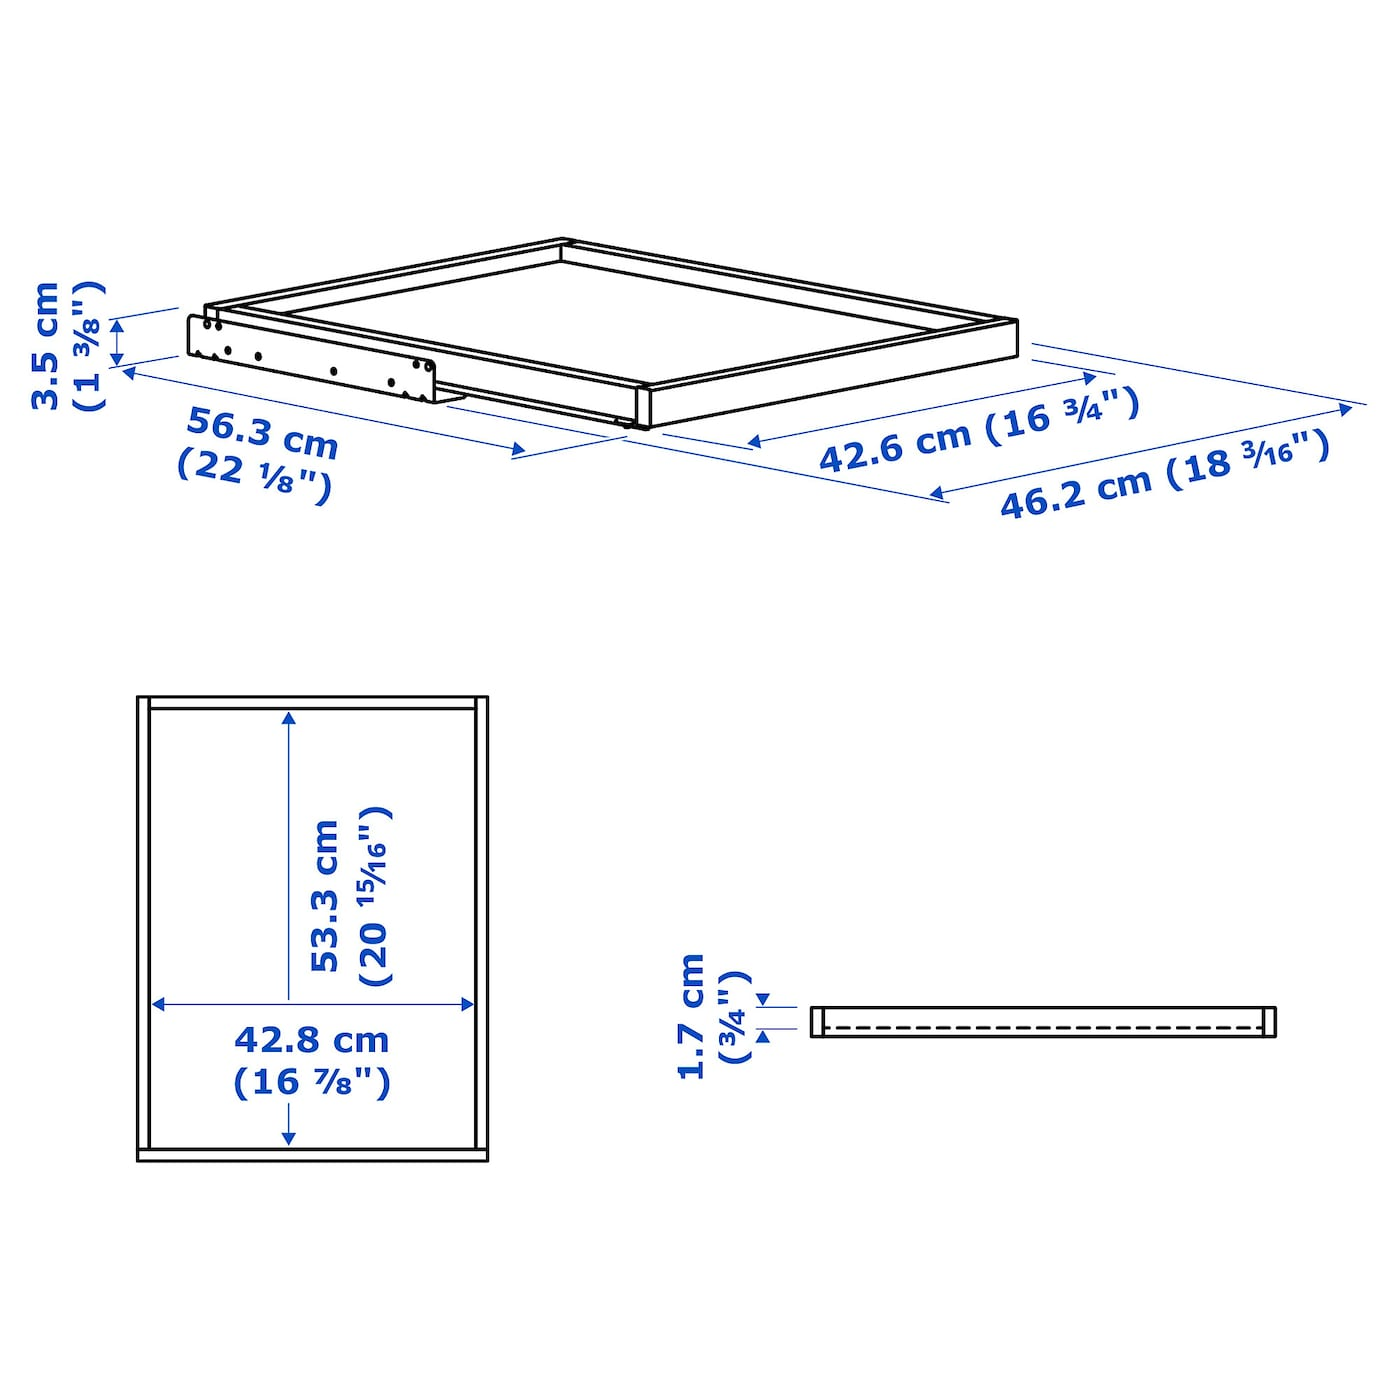 IKEA KOMPLEMENT pull-out tray 10 year guarantee. Read about the terms in the guarantee brochure.